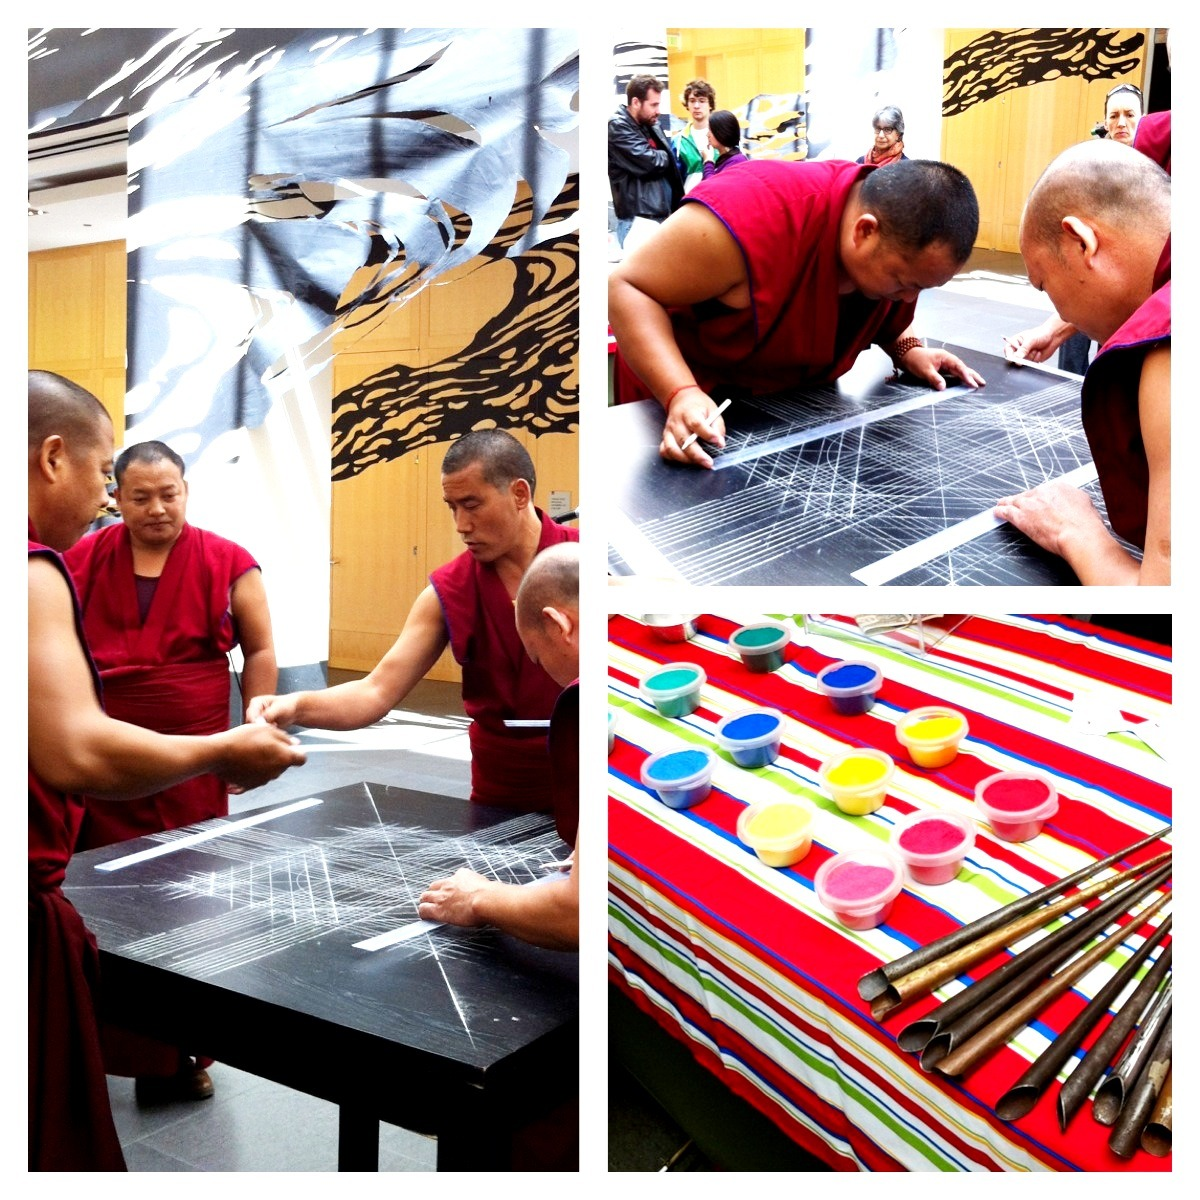 And we're live! The monks are here right now working on their Tibetan sand mandala. You can see the exquisite gridwork that they're laying down, the first step in creating a highly detailed mandala. Also pictured: colored sand and instruments. This is a very special opportunity to see the monks — from a monastery in South India — creating a mandala. They'll be working through Sunday. Upon completion the mandala will be destroyed, an important lesson of Buddhism (nothing is permanent).